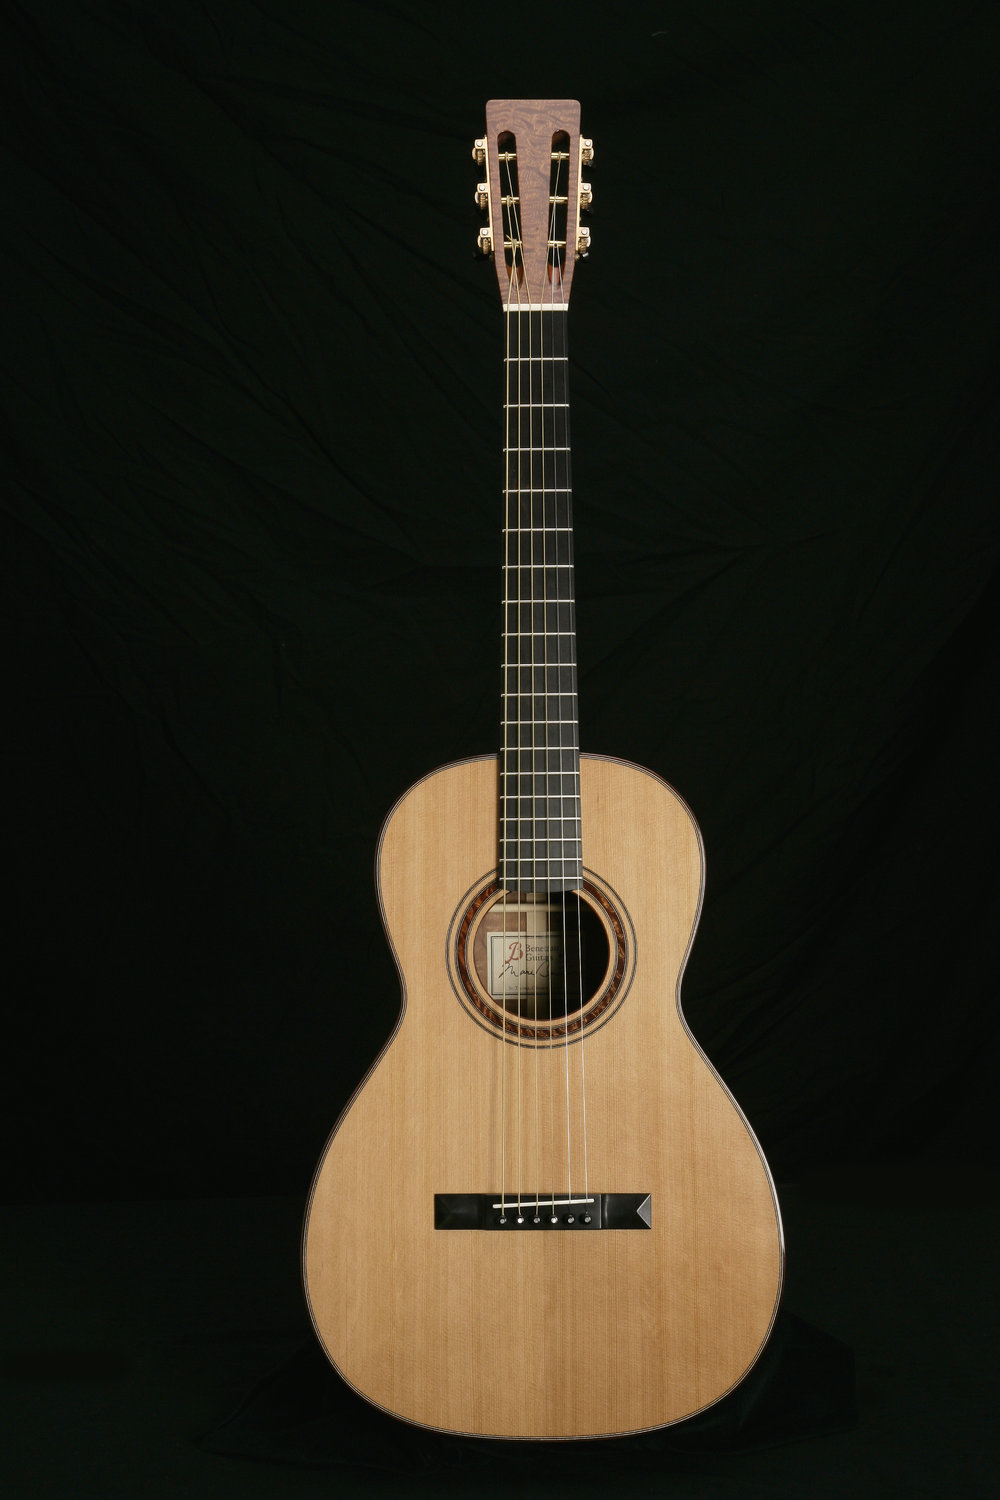 '0' 12 Fret Parlor - This is the quintessential parlor (parlour) guitar and the smallest model that I build. Extremely comfortable to play – the ultimate couch guitar. Well balanced tone from bass to mids to highs, a wonderful fingerstyle instrument. DimensionsUpper Bout: 9 3/8